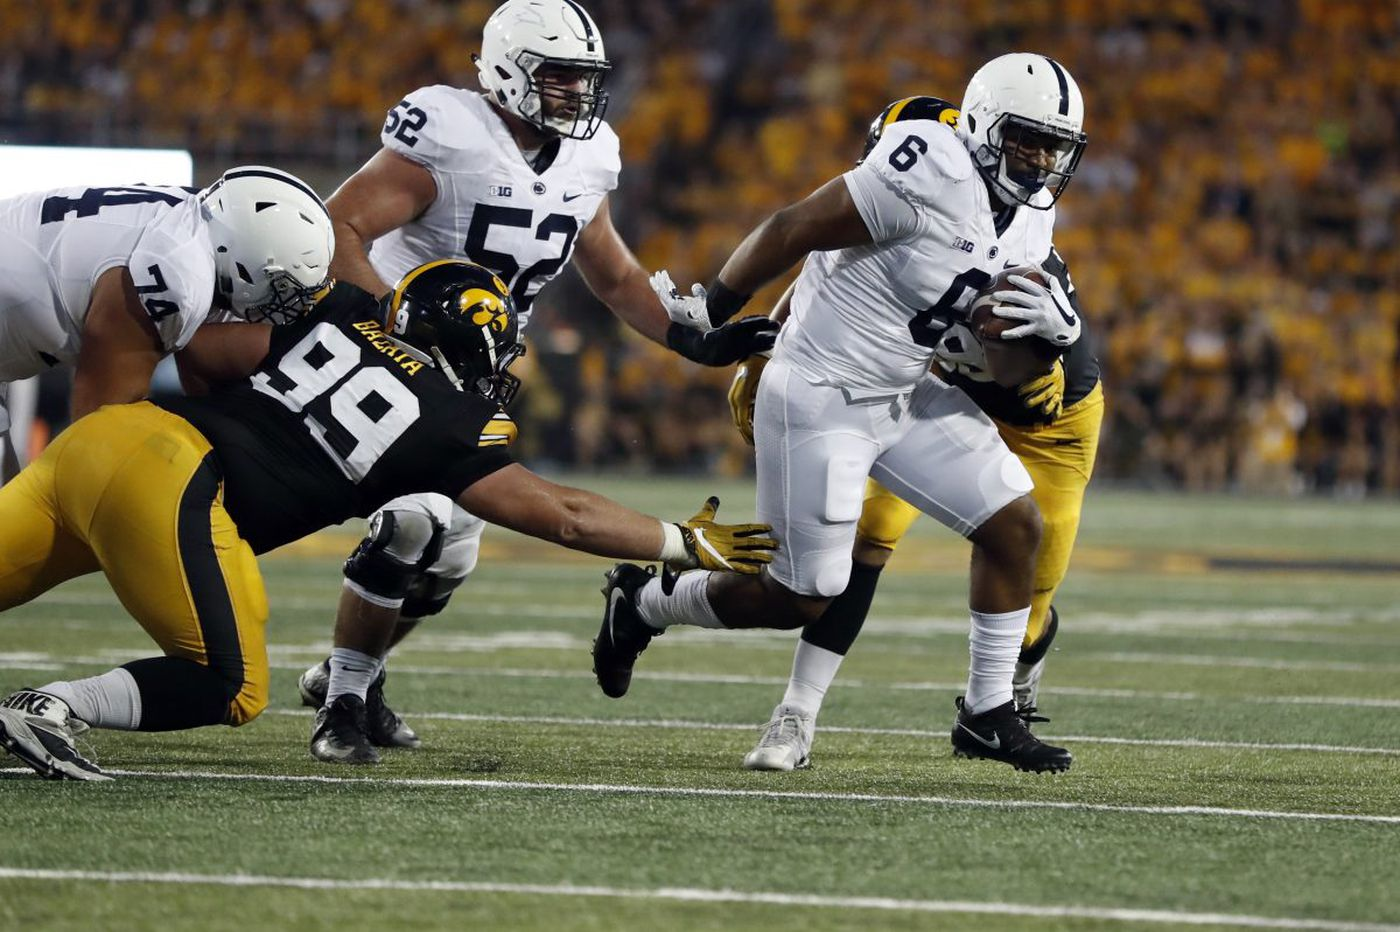 Penn State grants releases to two football players